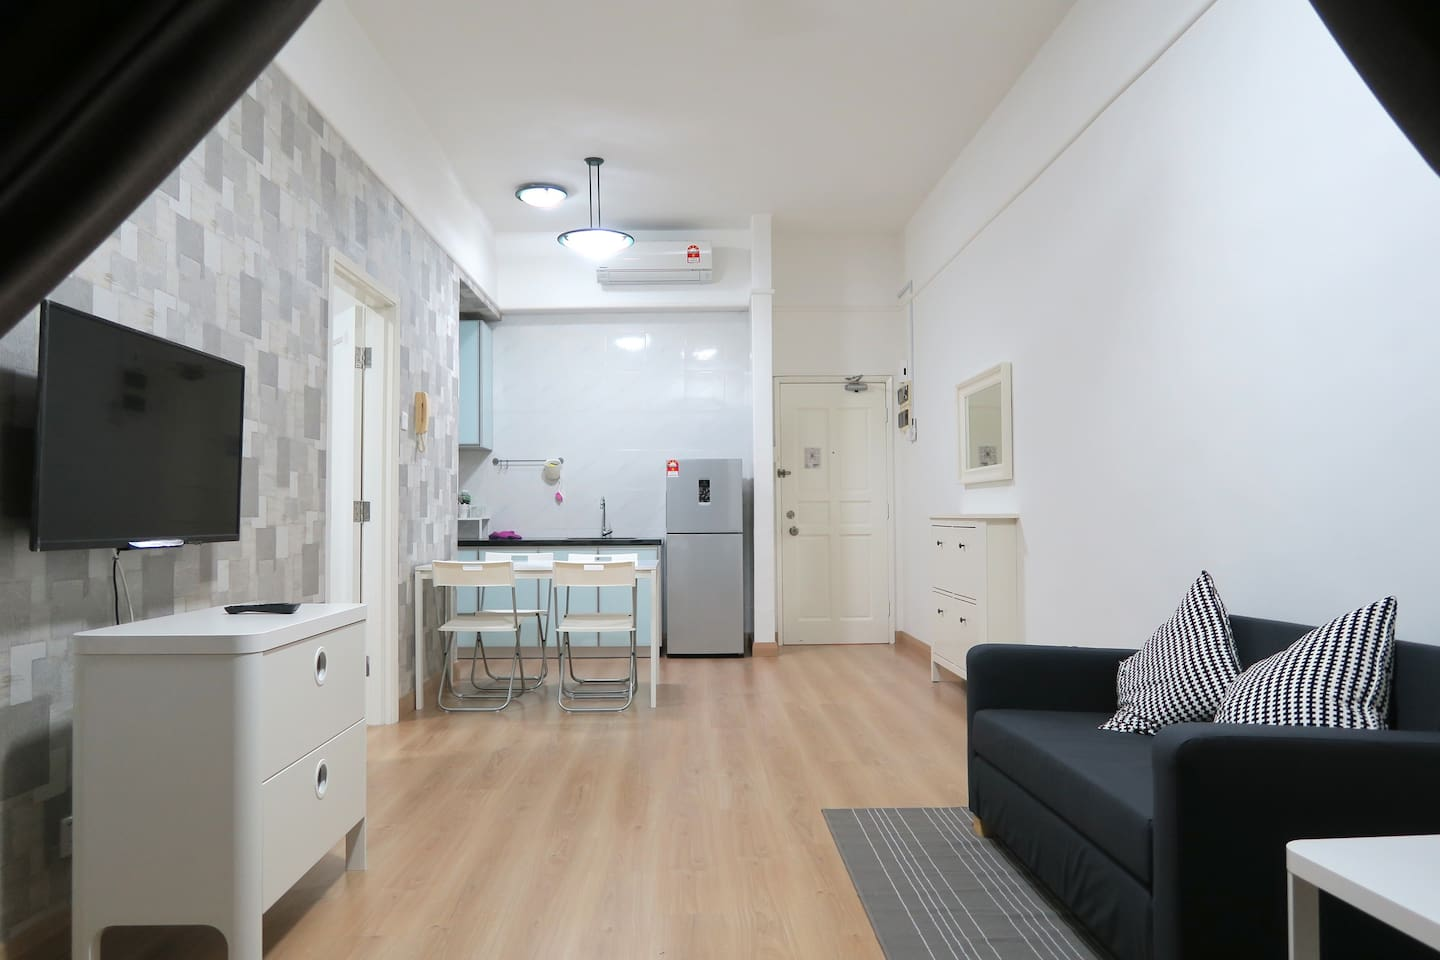 Newly furnished 1 bedroom apartment.